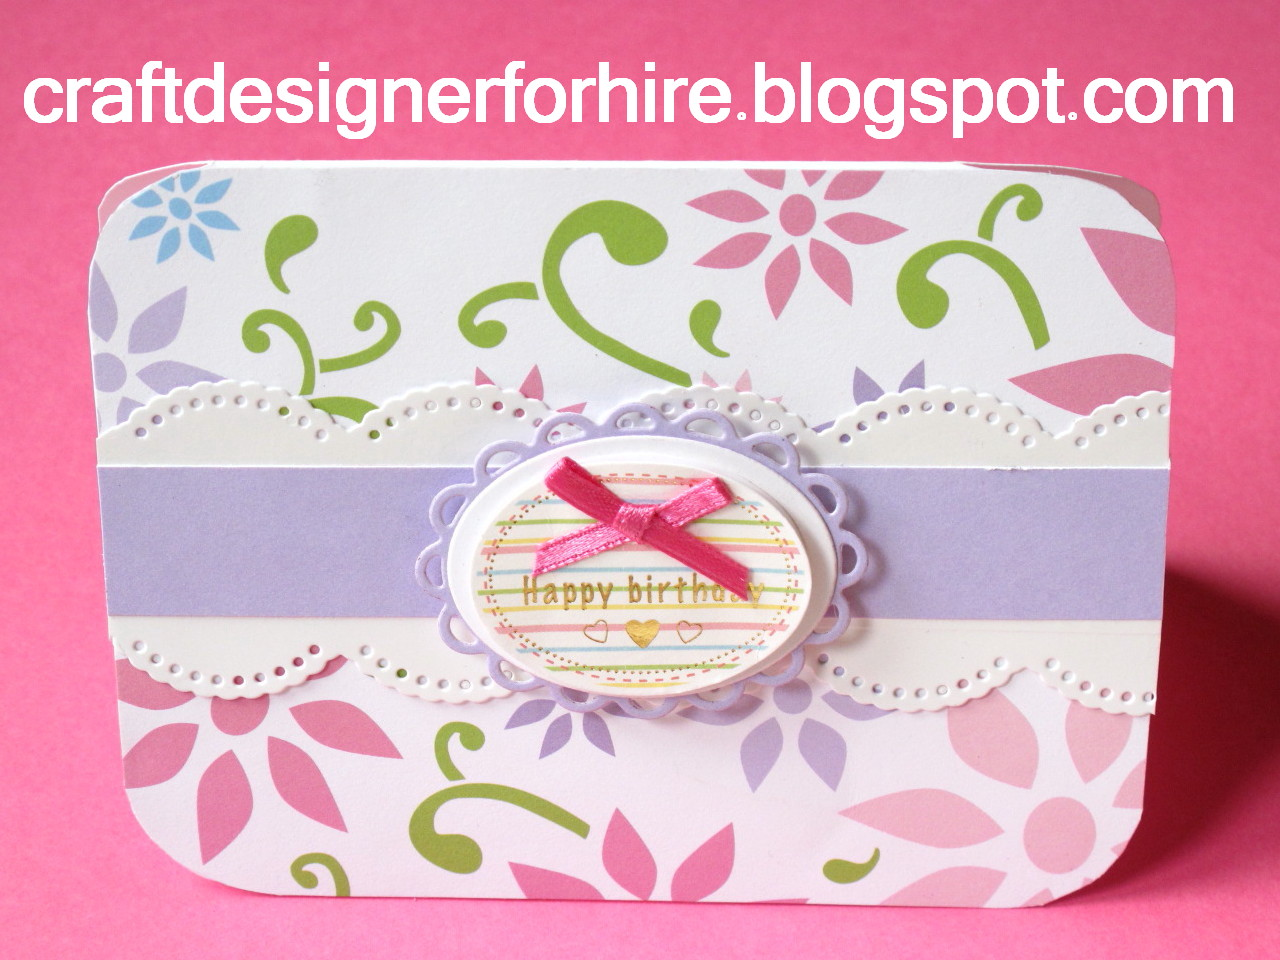 Birthday Card And Coordinating Gift Bag From Craft Designer Part 2 Designs By Eve Leder